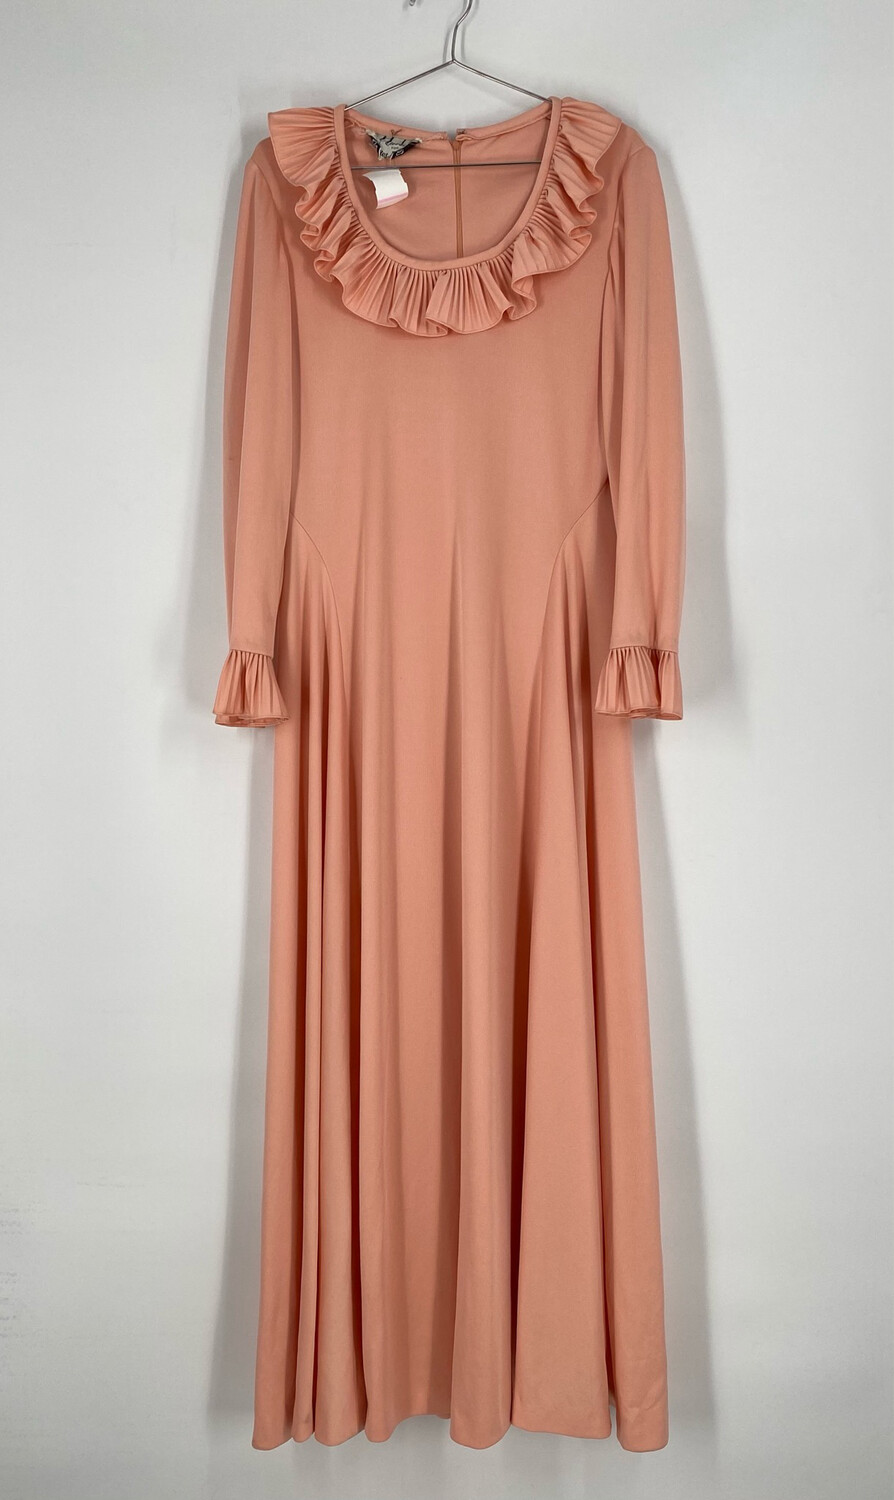 Umba For Parues Feinstein Vintage Pink Maxi Dress Size 1X